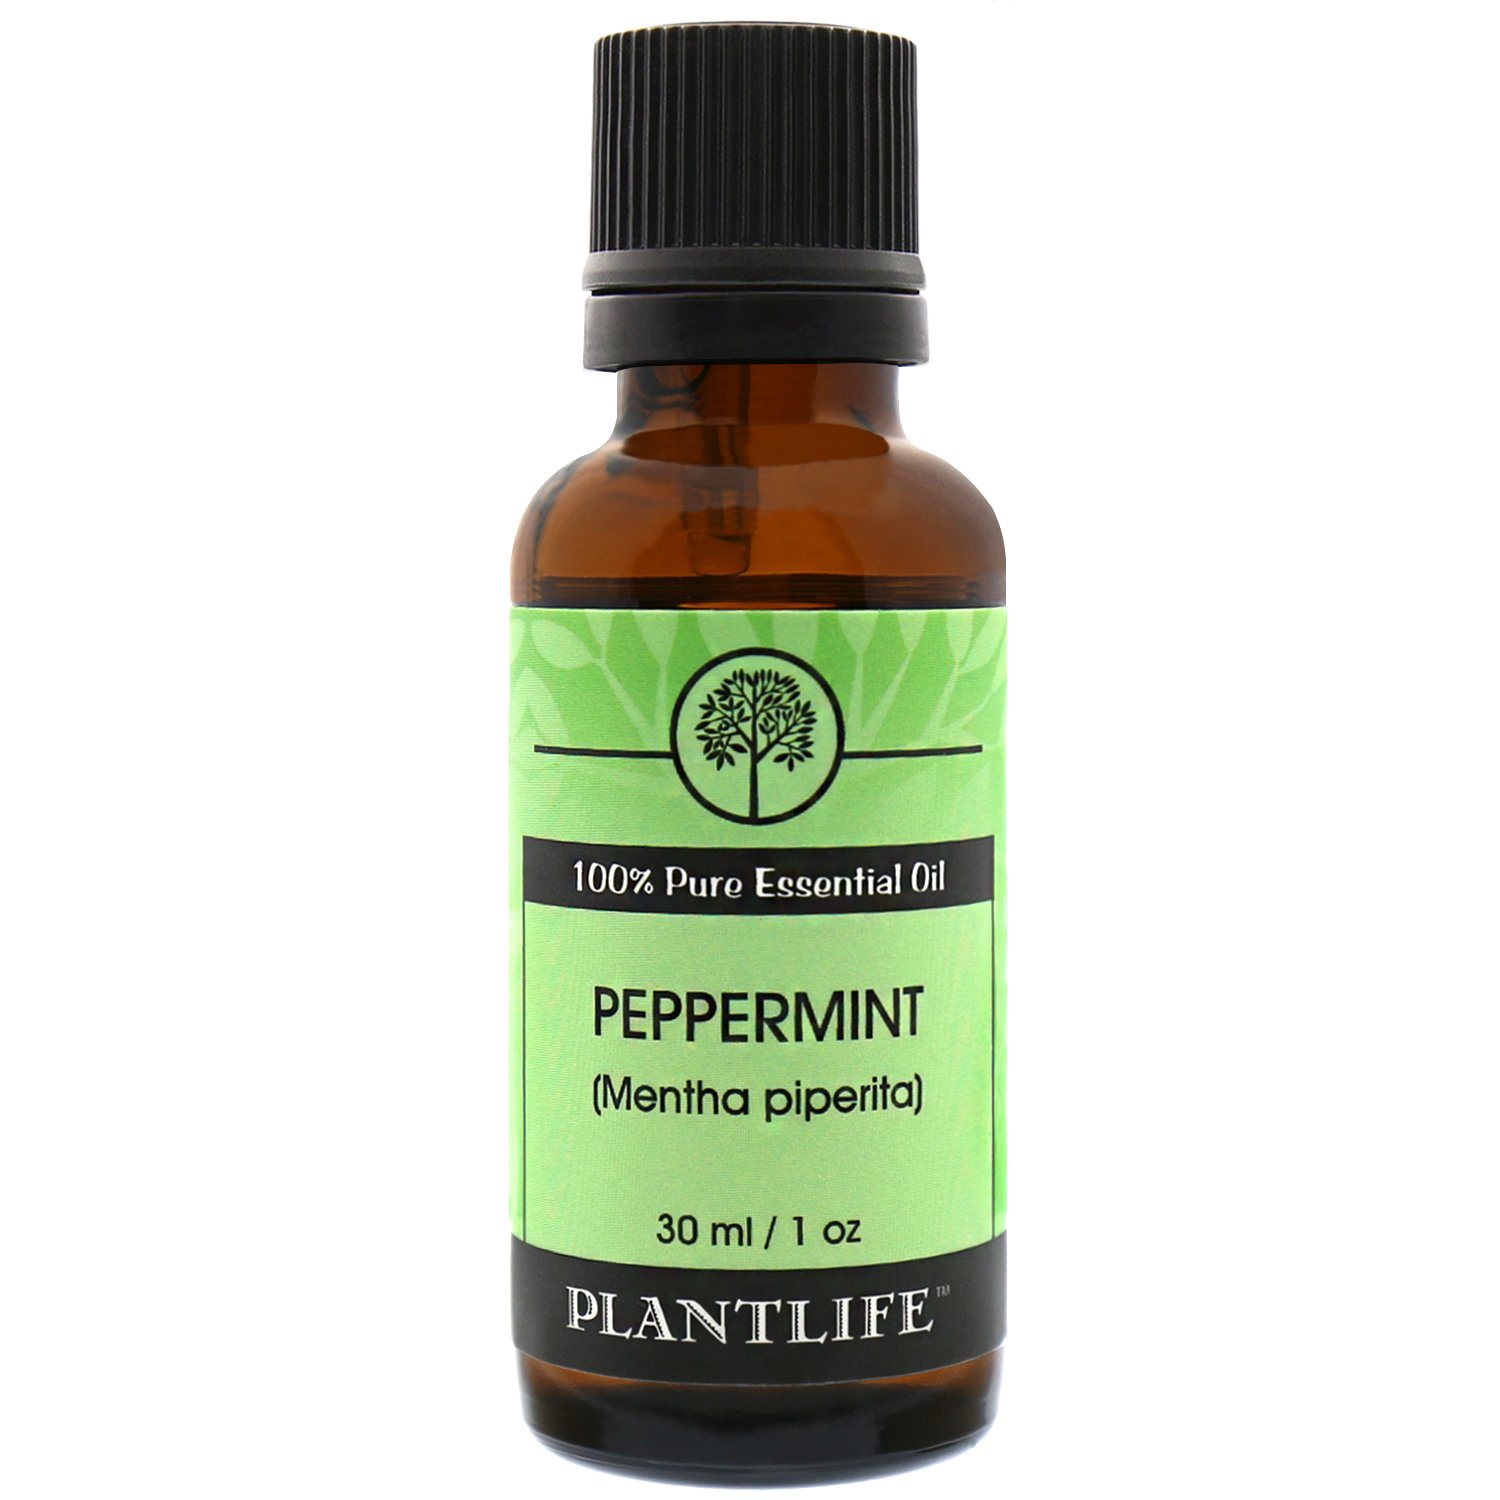 Plantlife Peppermint 100% Pure Essential Oil - 30 ml